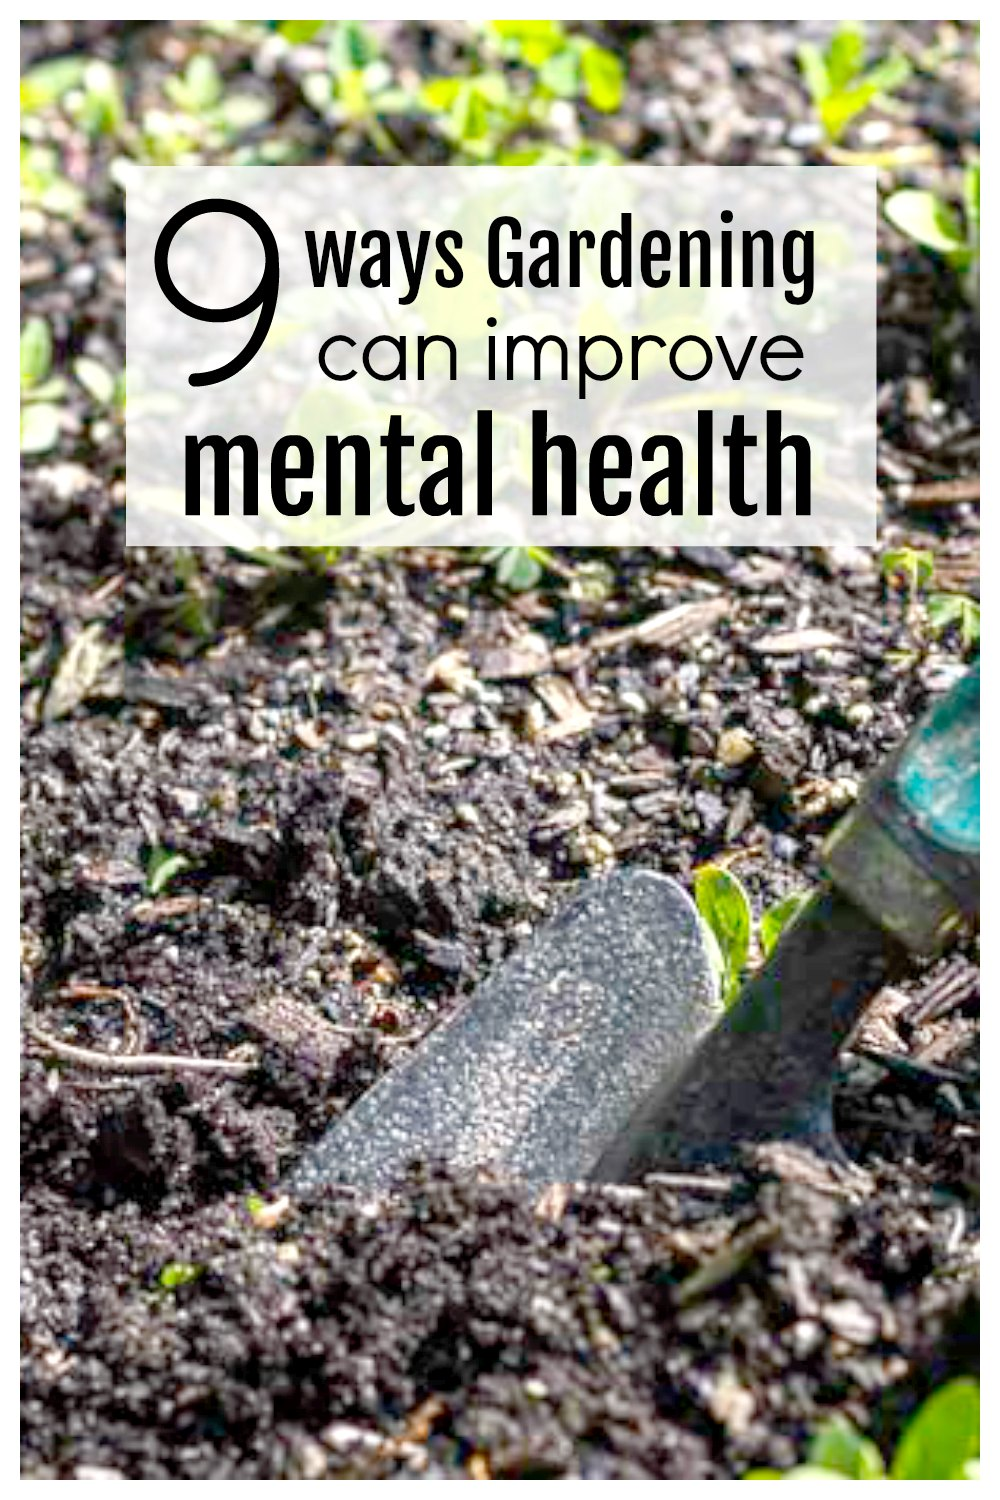 Garden trowel in garden dirt with text overlay 9 ways gardening can improve mental health